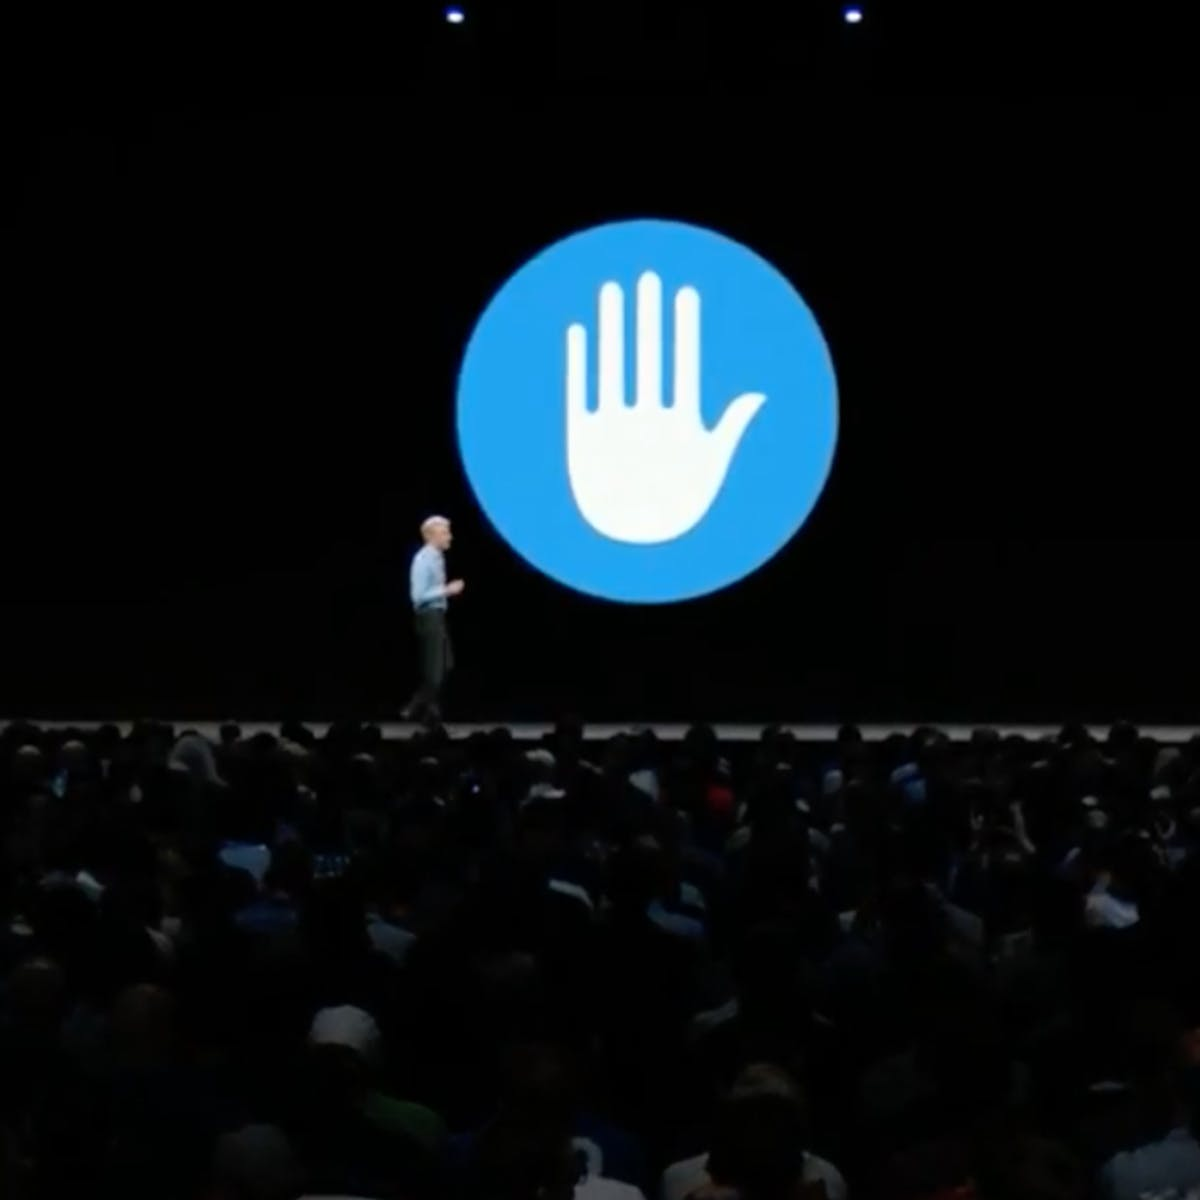 MacOS Mojave 10 14: 3 Ways the New OS Safeguards Privacy